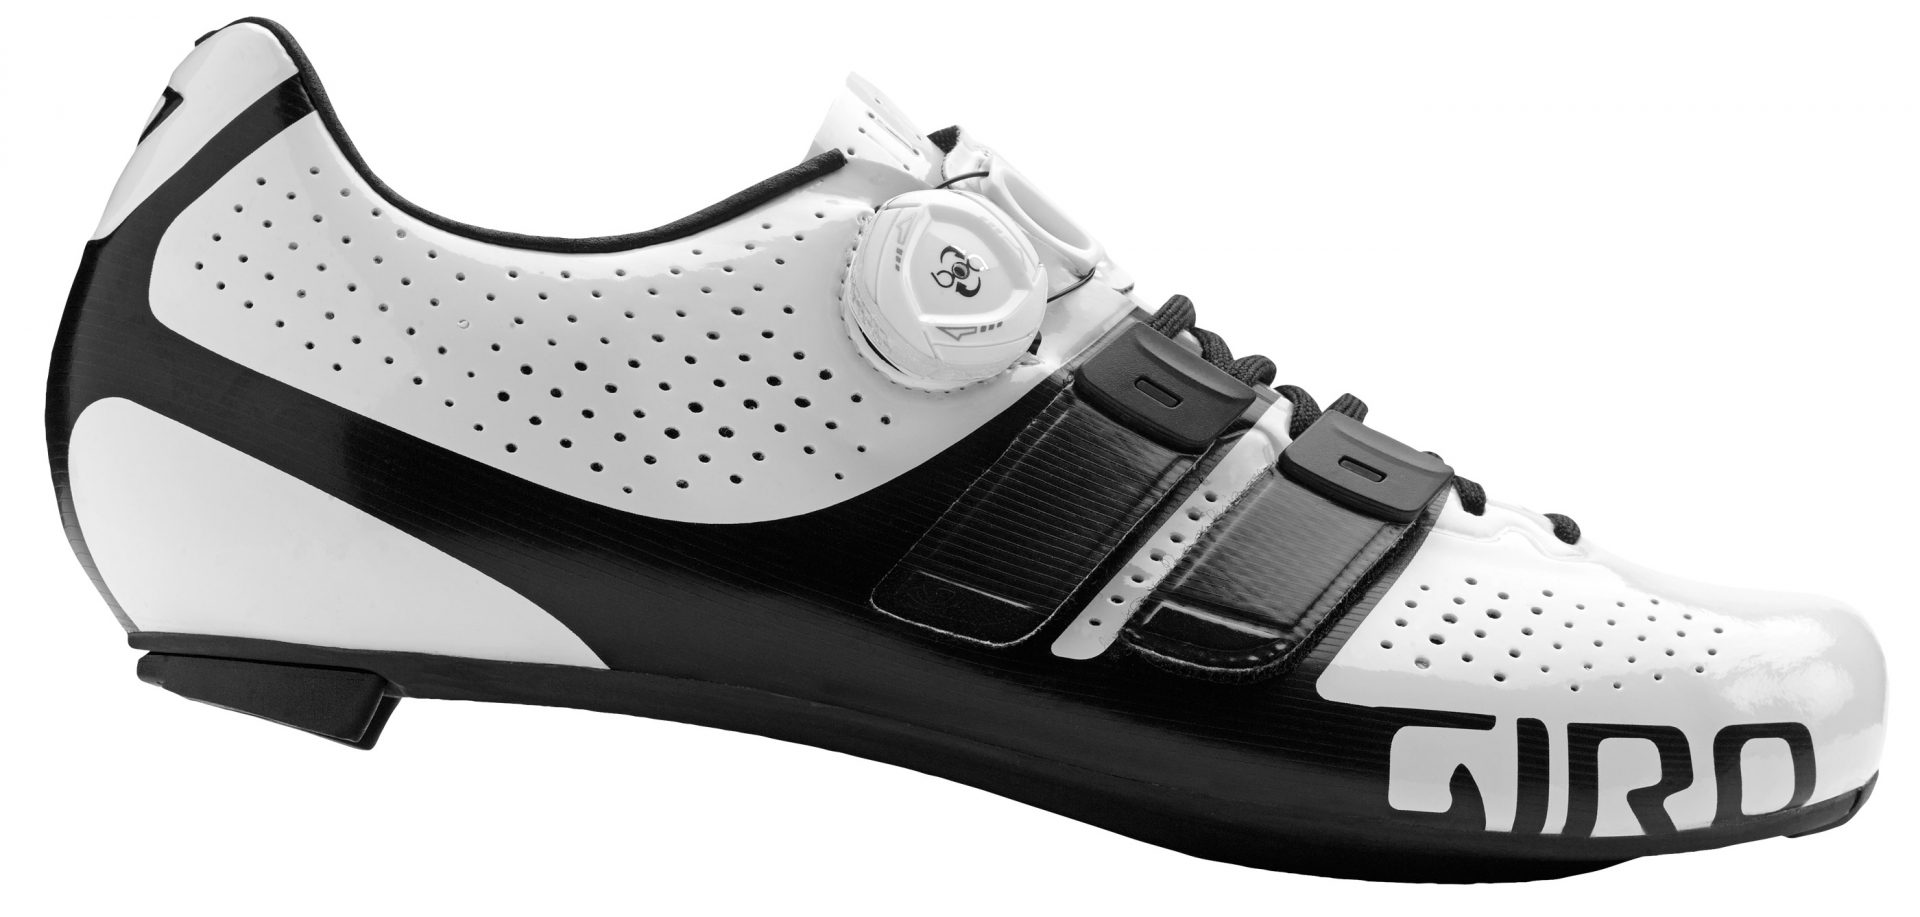 Giro-Factor-Techlace_lace-upBoa-dial_premium-carbon-soled-road-shoes_white-side